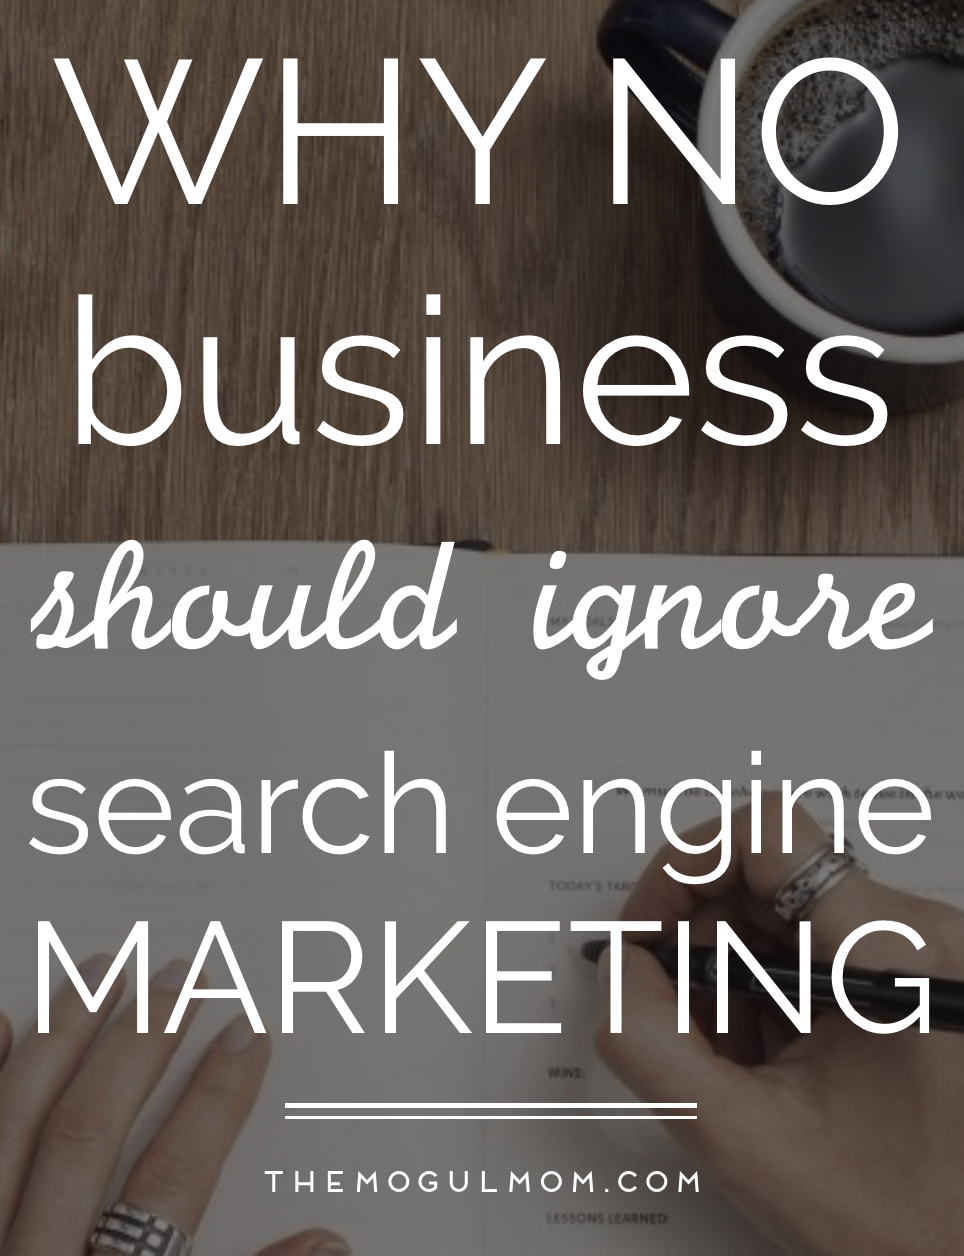 Why No Business Should Ignore Search Engine Marketing